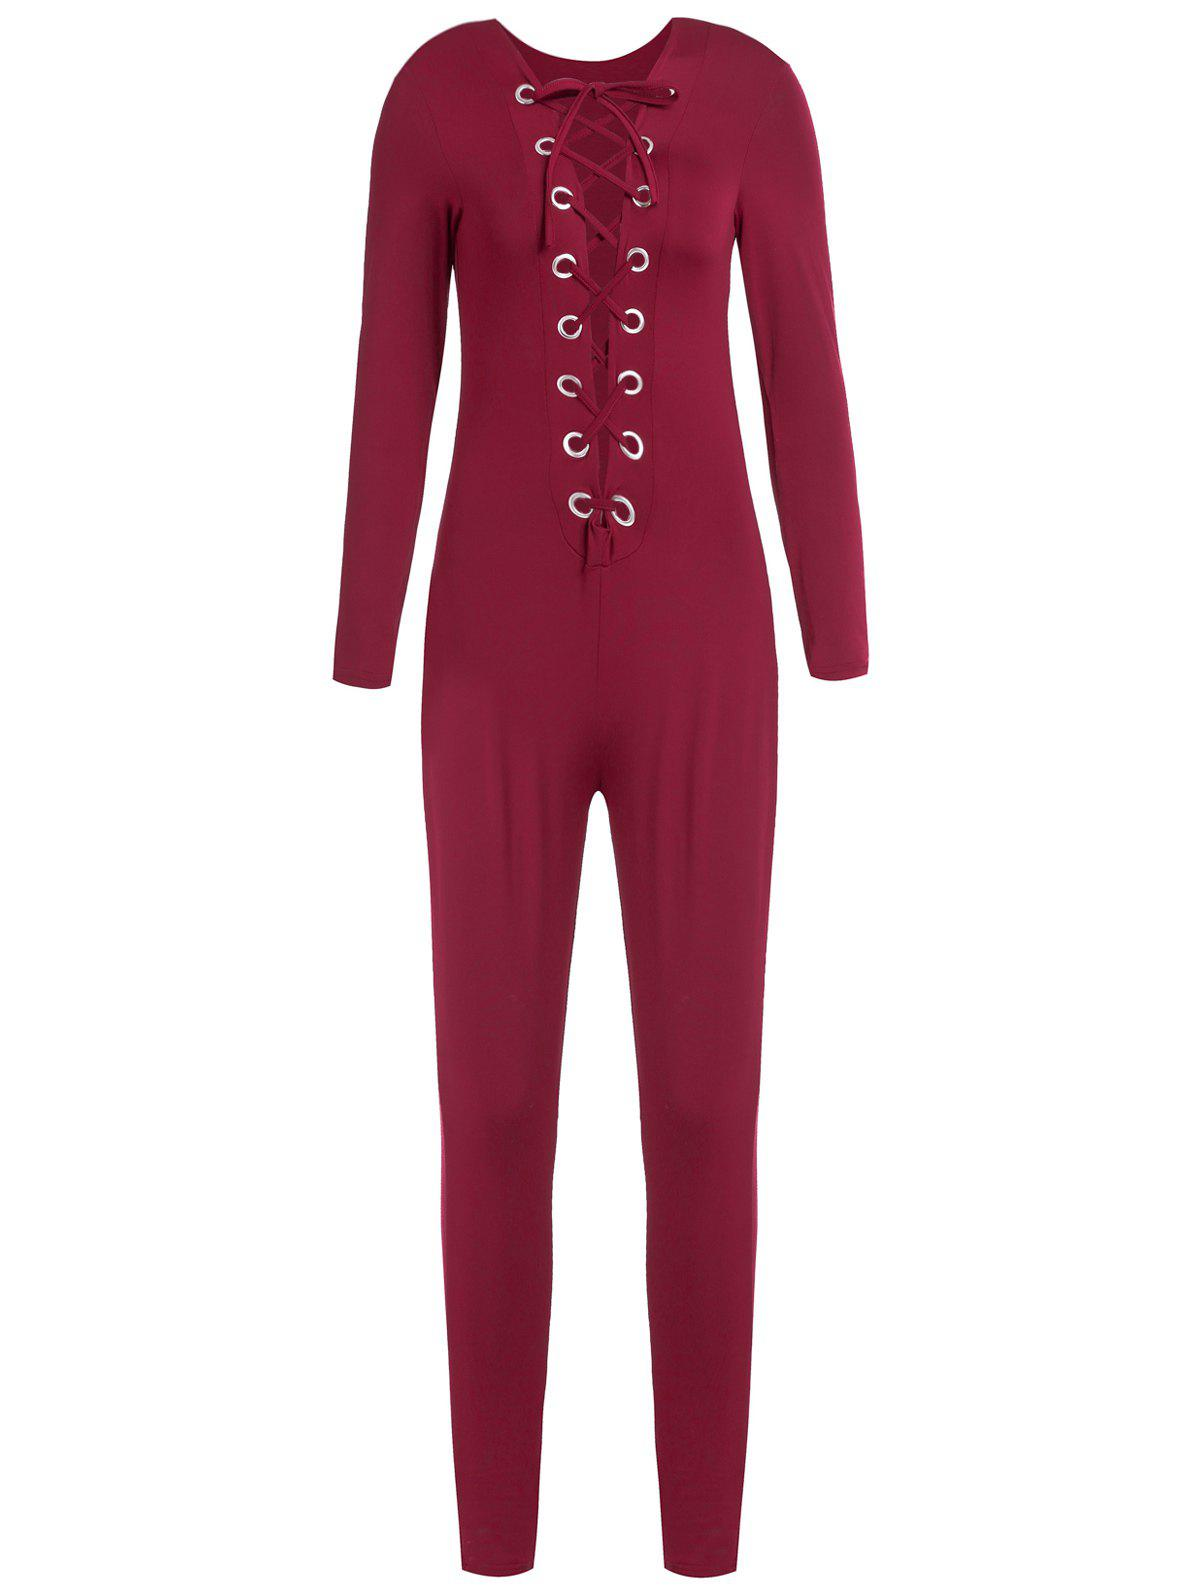 Shop Sexy Round Neck Long Sleeve Hollow Out Slimming Women's Jumpsuit